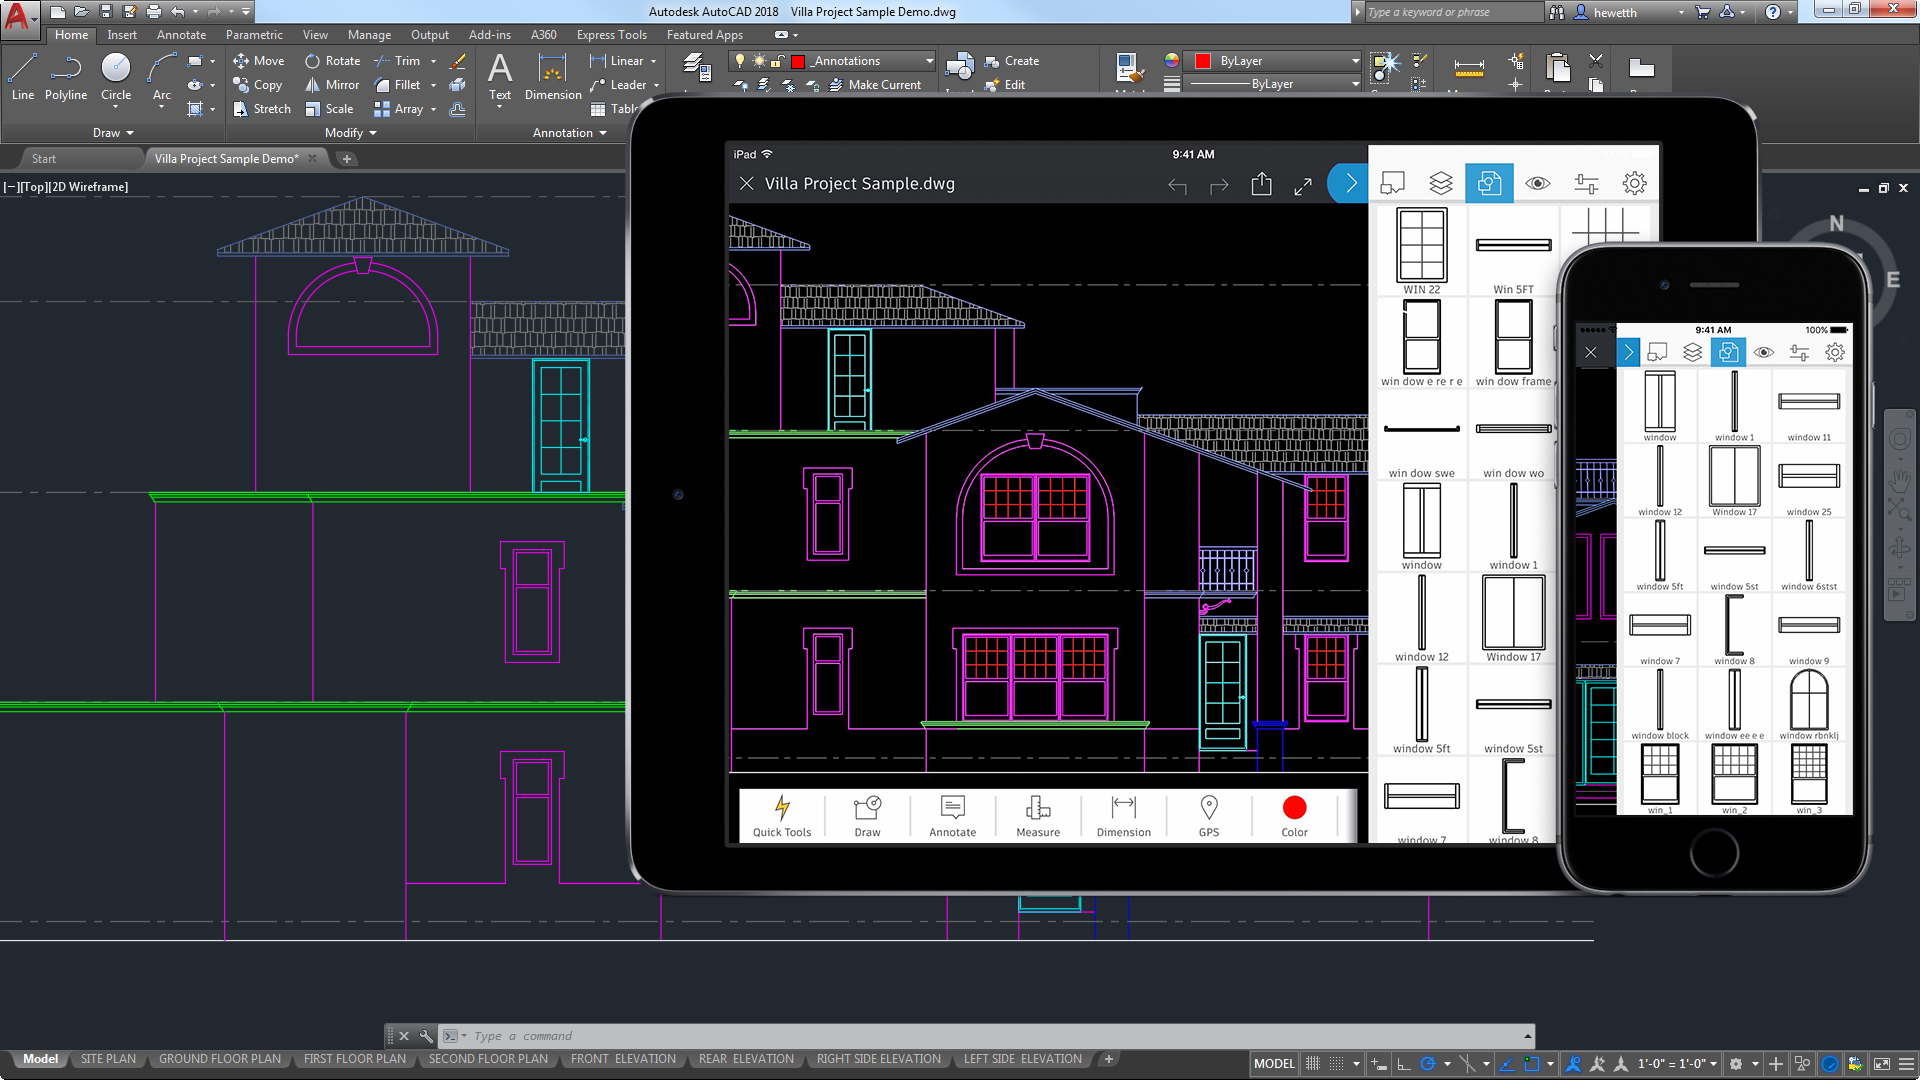 Autocad 2010 64 Bit Portable Version Download - inmotionenergy